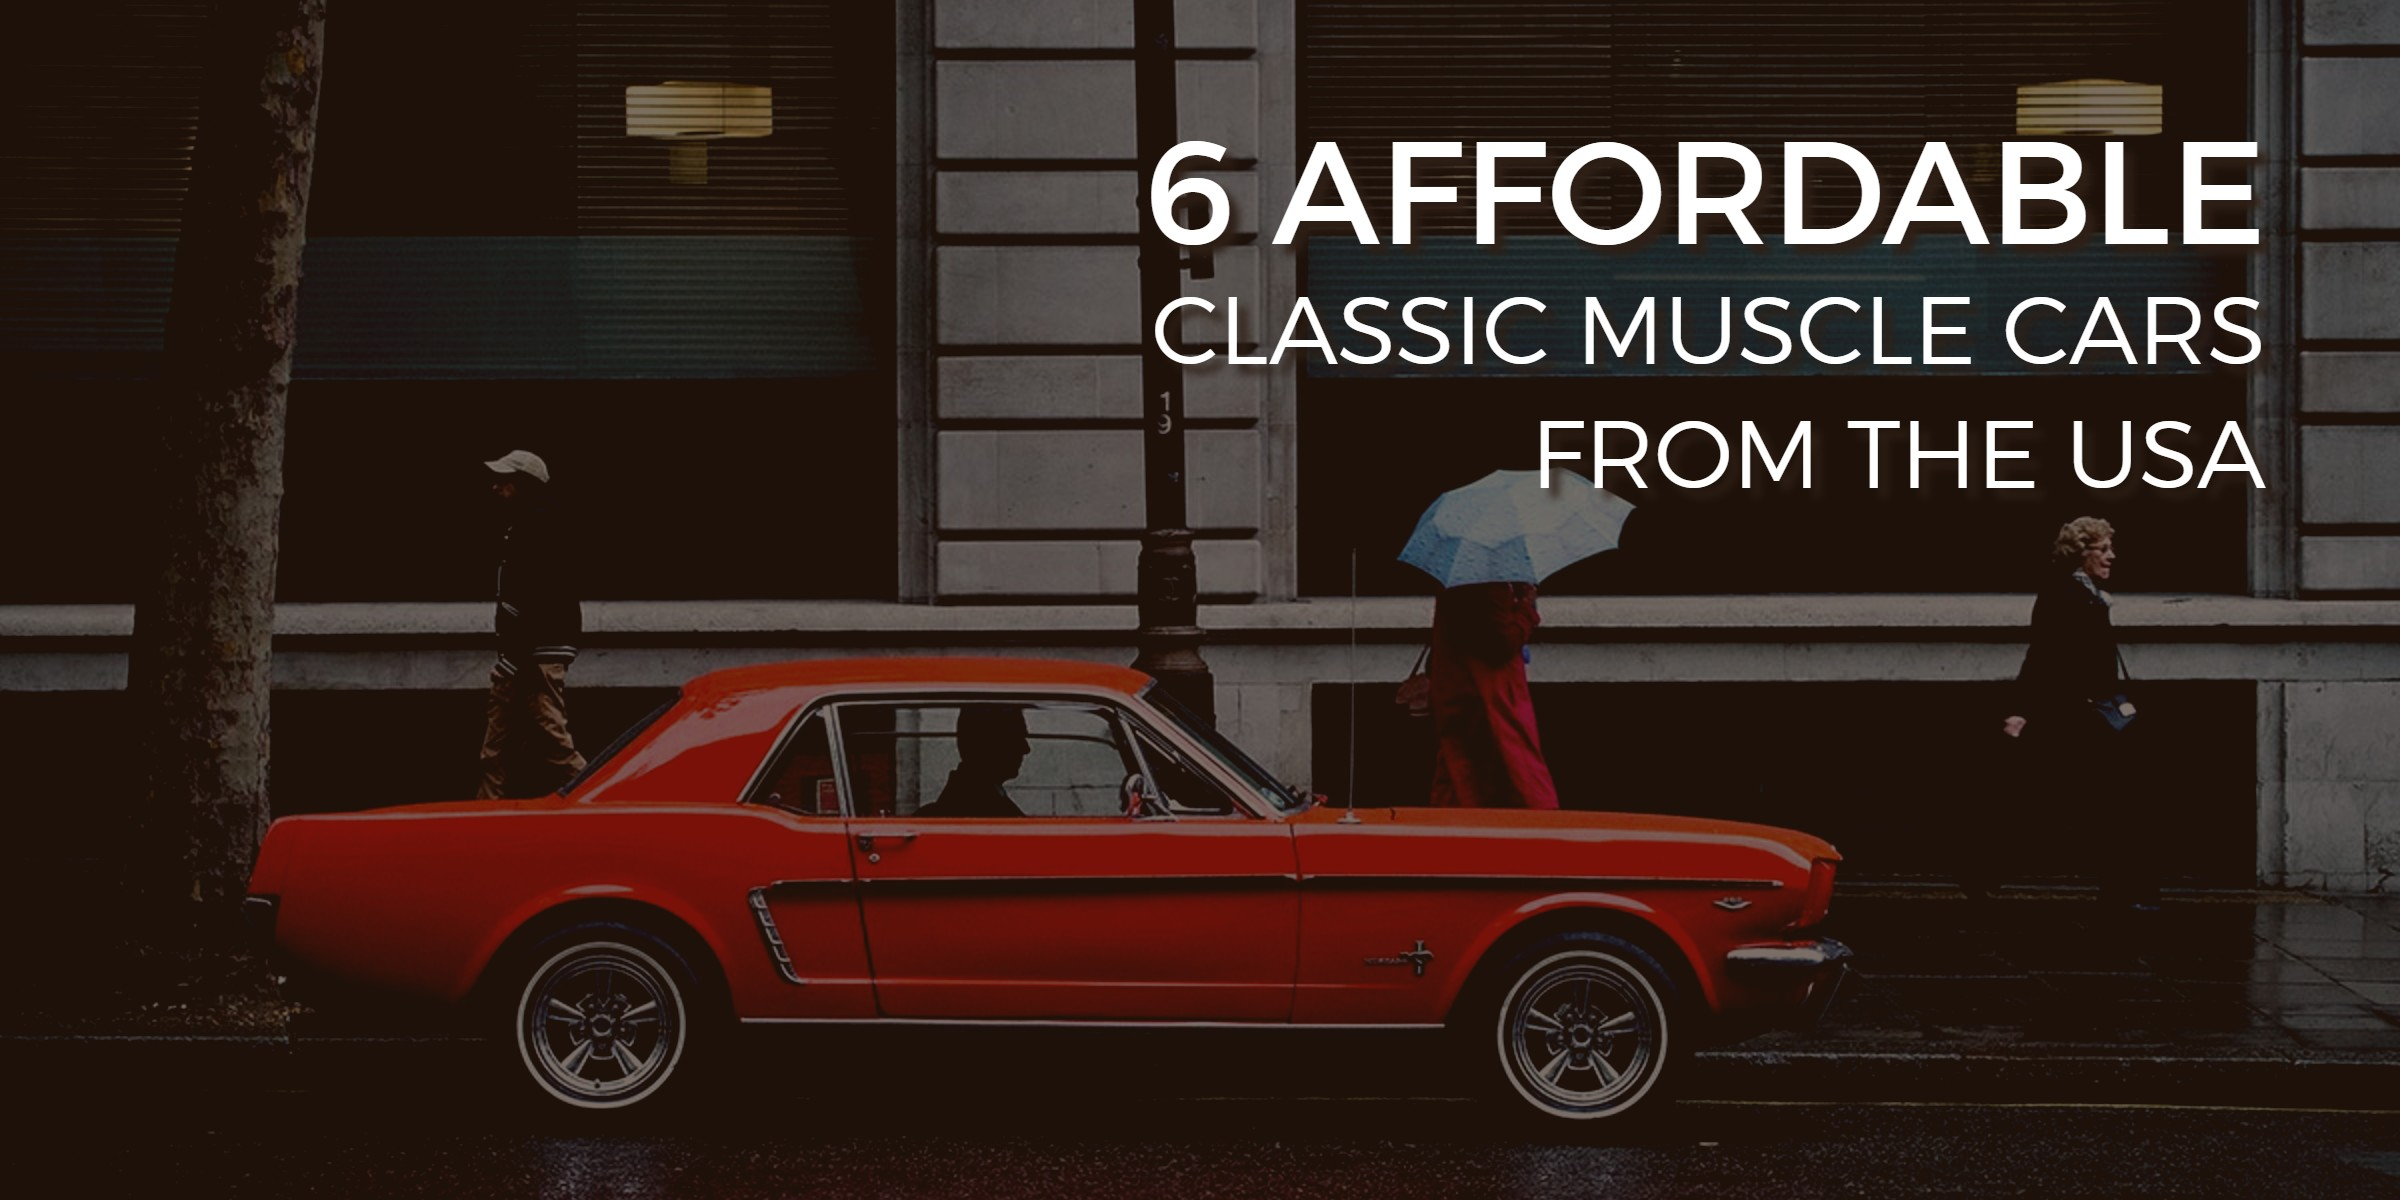 Affordable classic muscle cars from USA